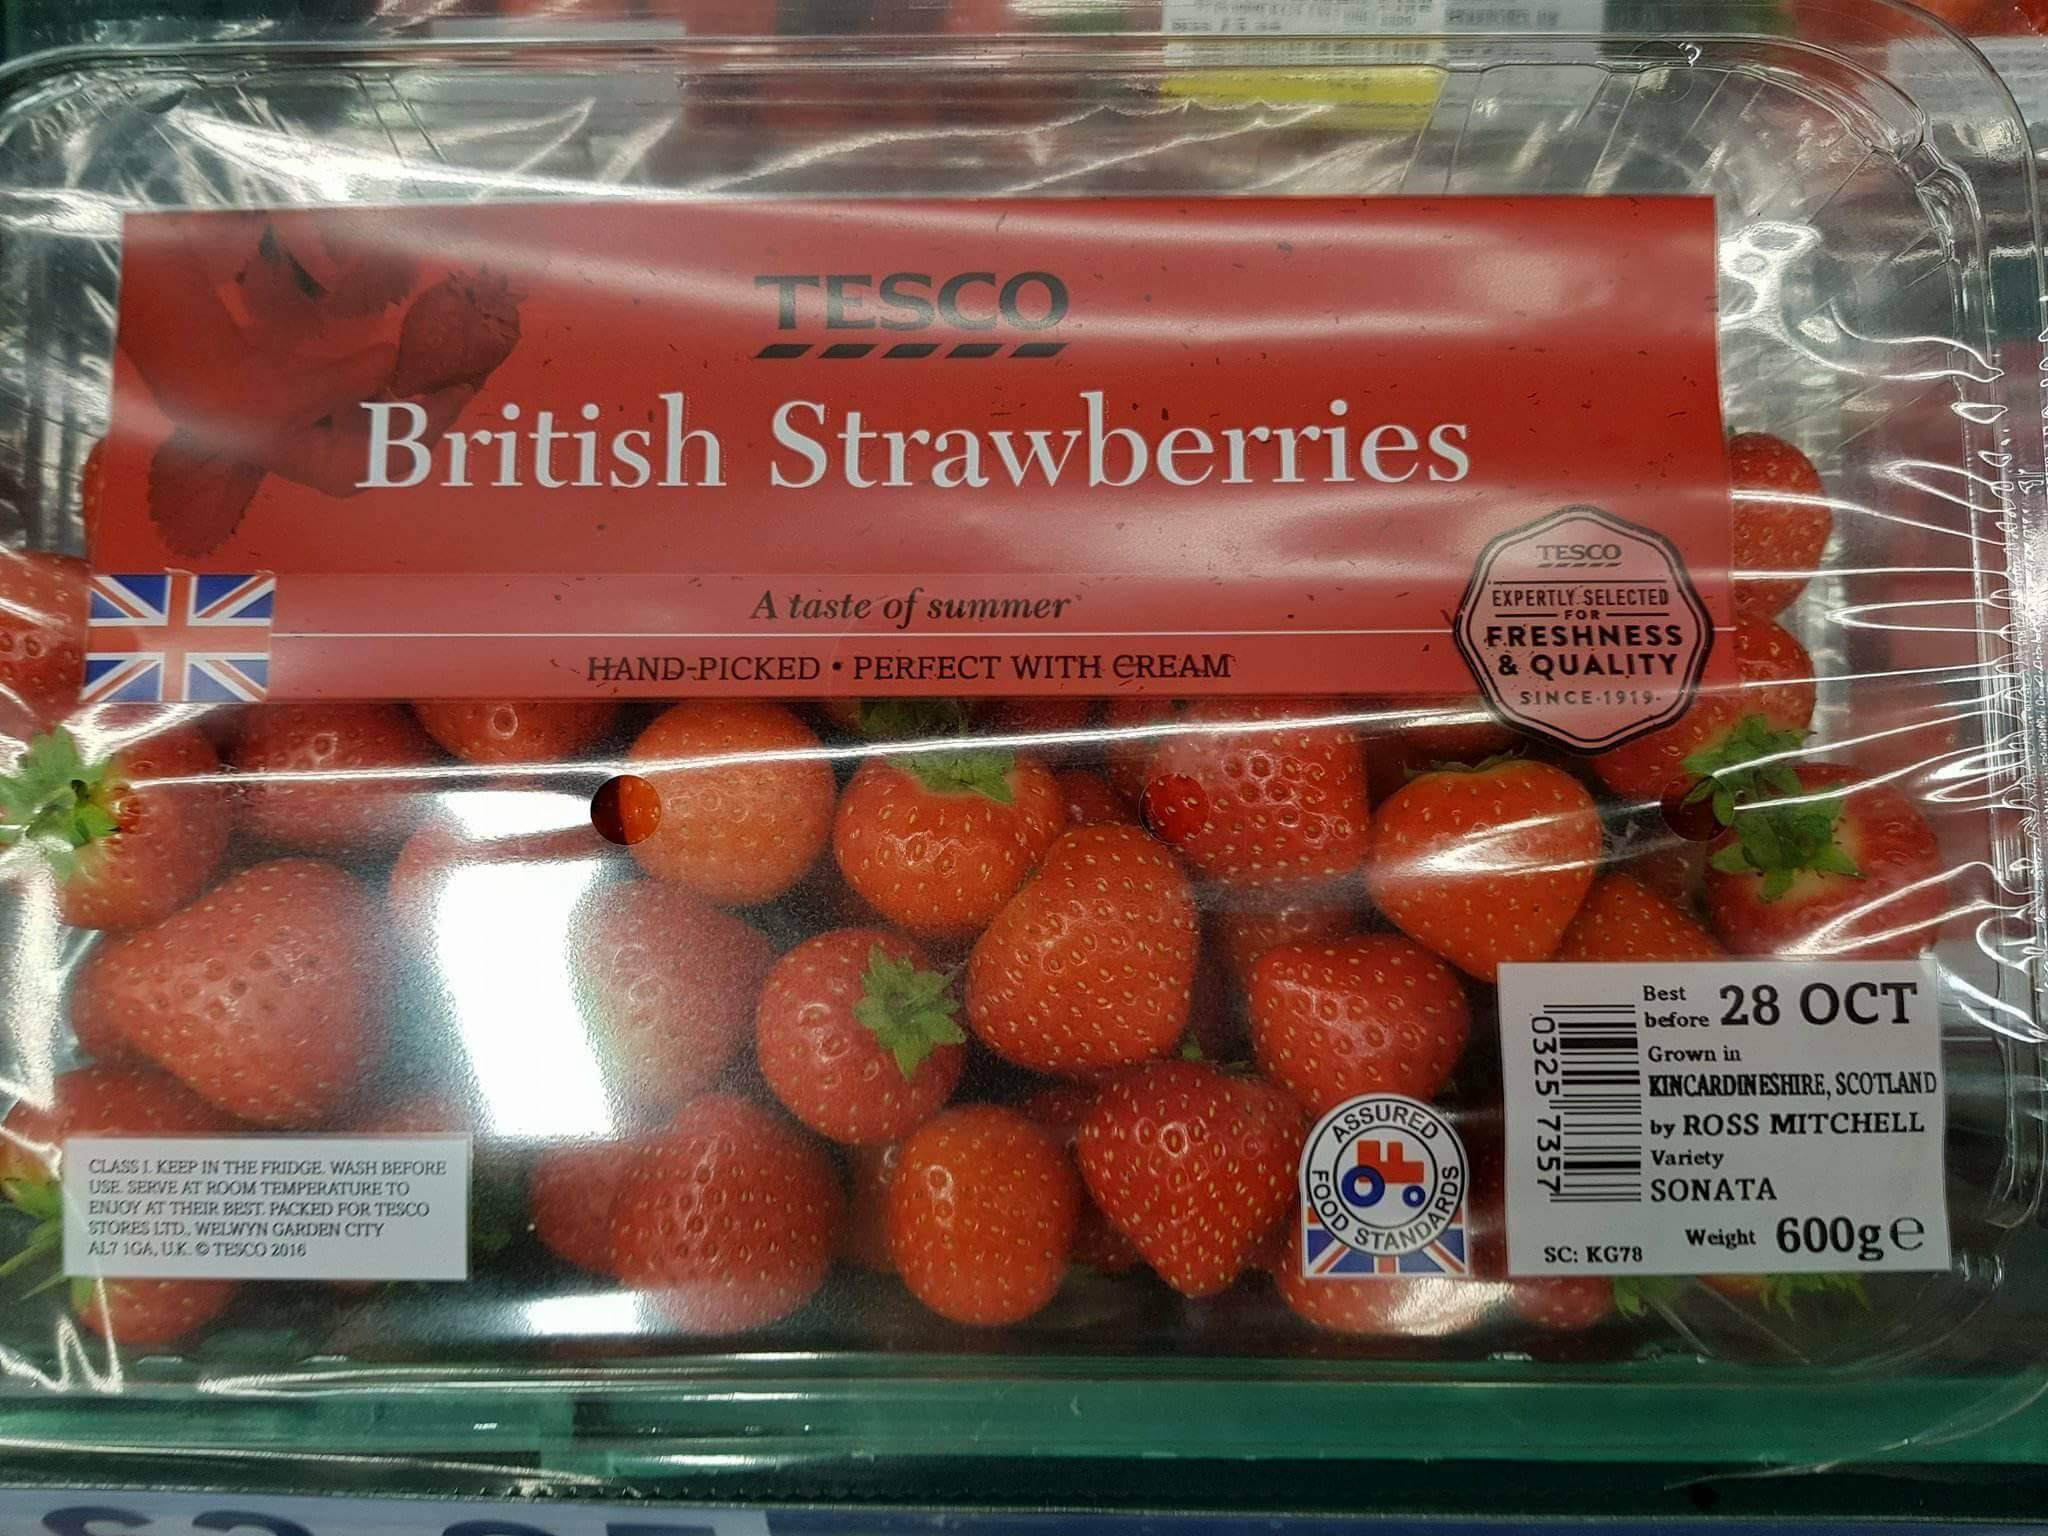 British Strawberries grown in Kincardinshire with a Union flag on the packaging in a Tesco